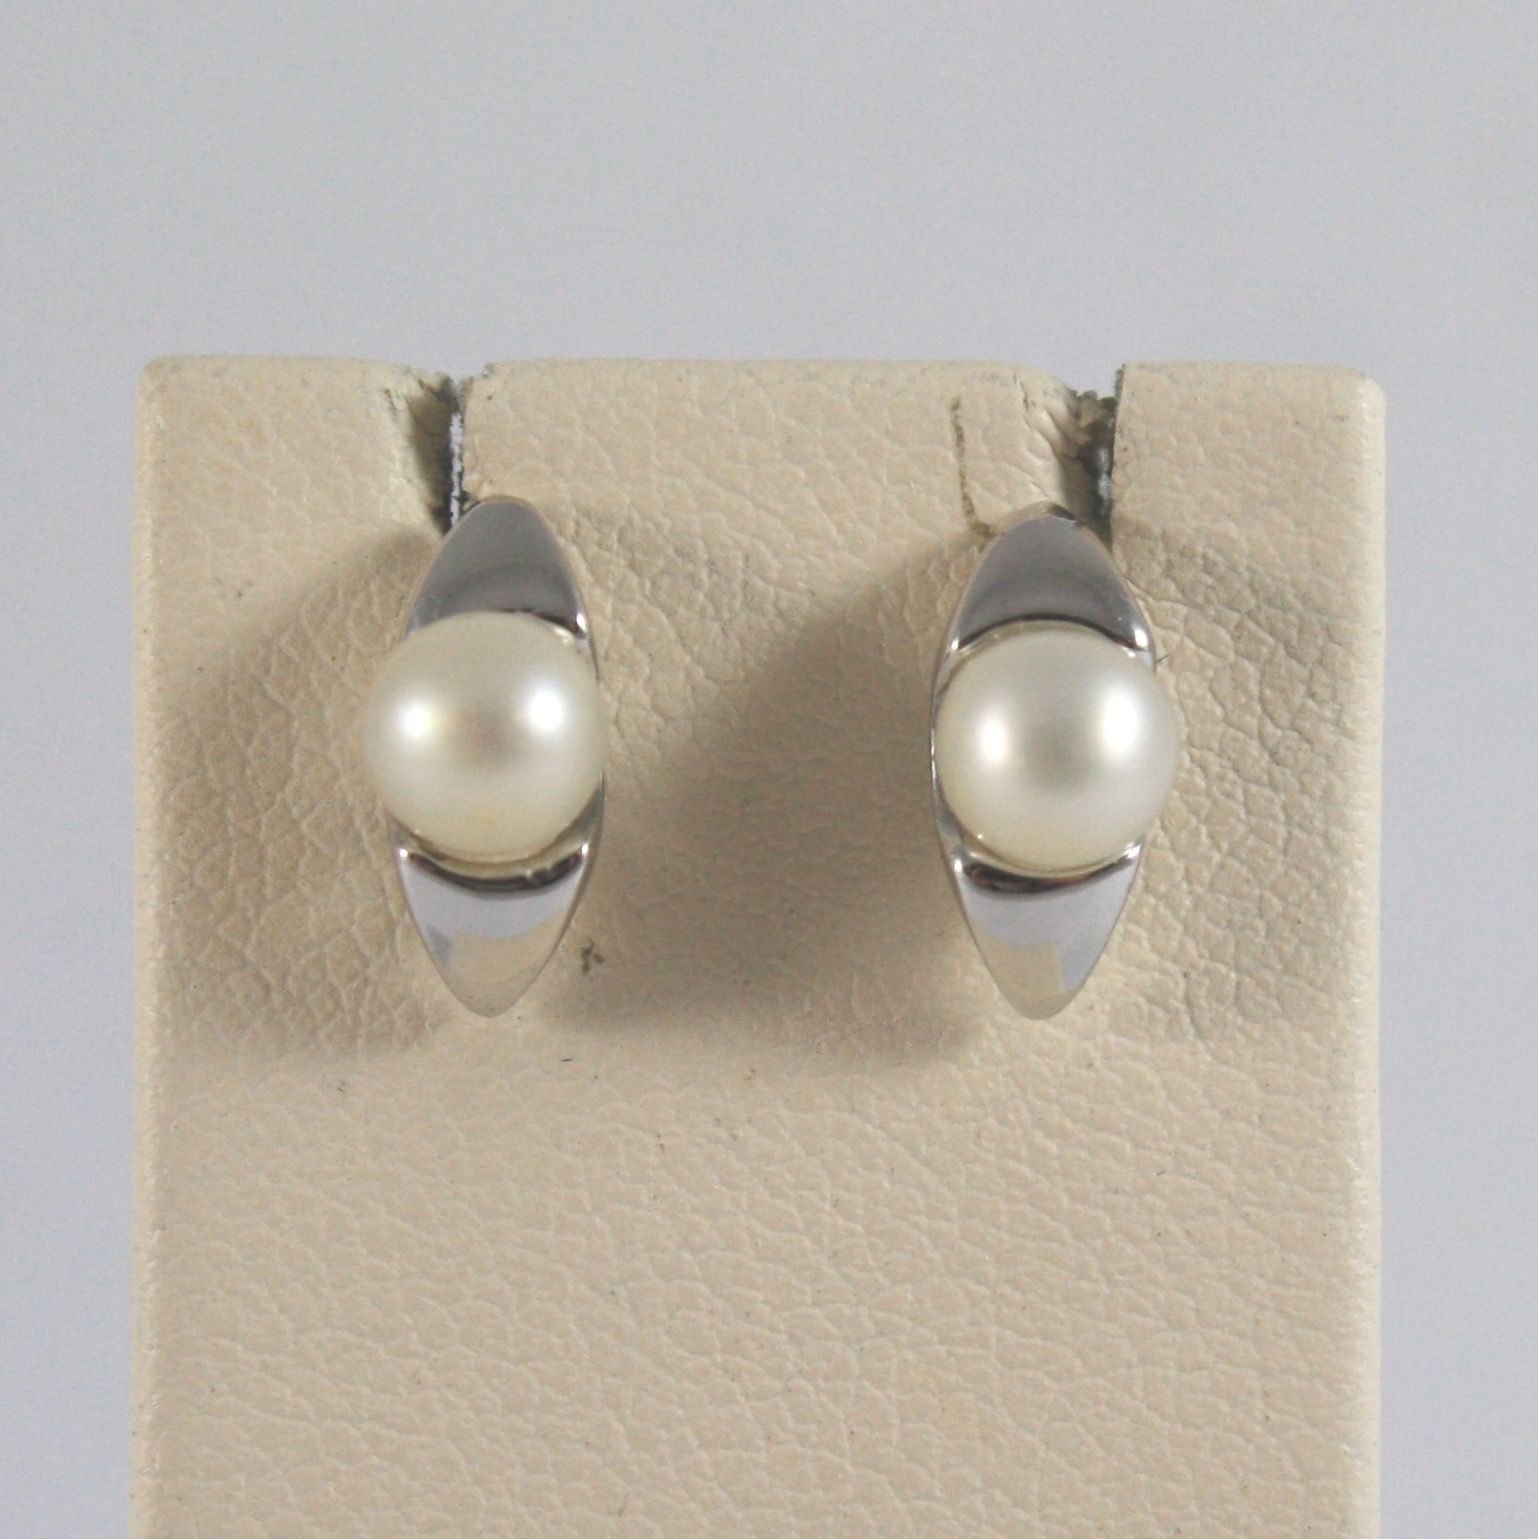 White Gold Earrings 750 18k stud with small white pearls